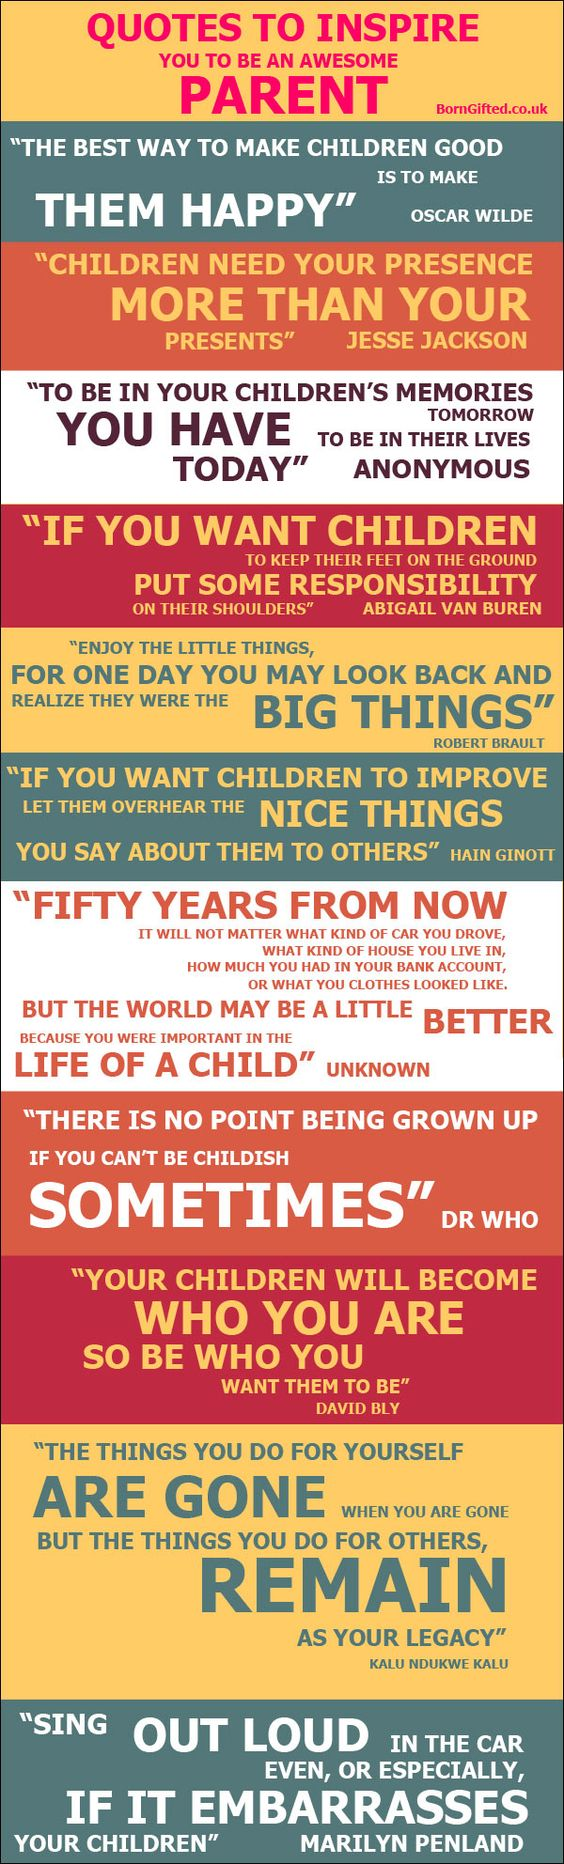 Inspirational Parenting Quotes by BornGifted.co.uk